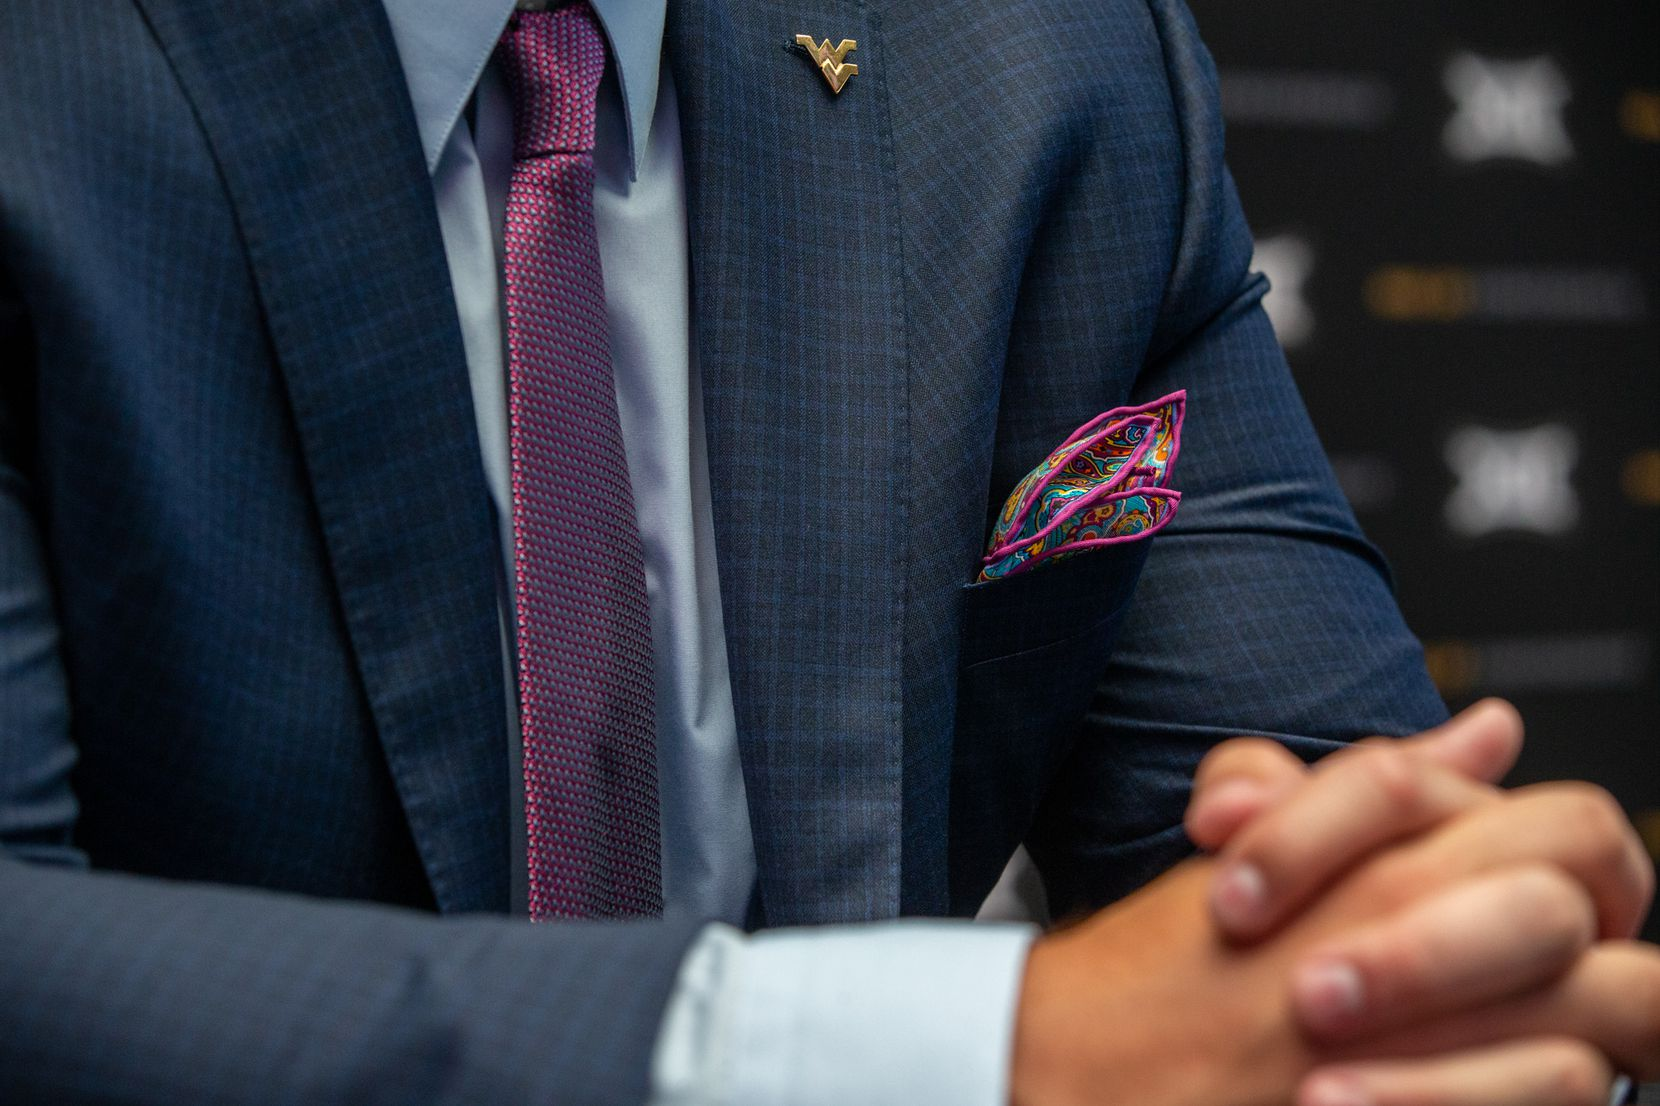 Colton McKivitz, offensive lineman for West Virginia University, sports a paisley pocket square during the Big 12 Conference Media Days event at the AT&T Stadium in Arlington on July 16, 2019.